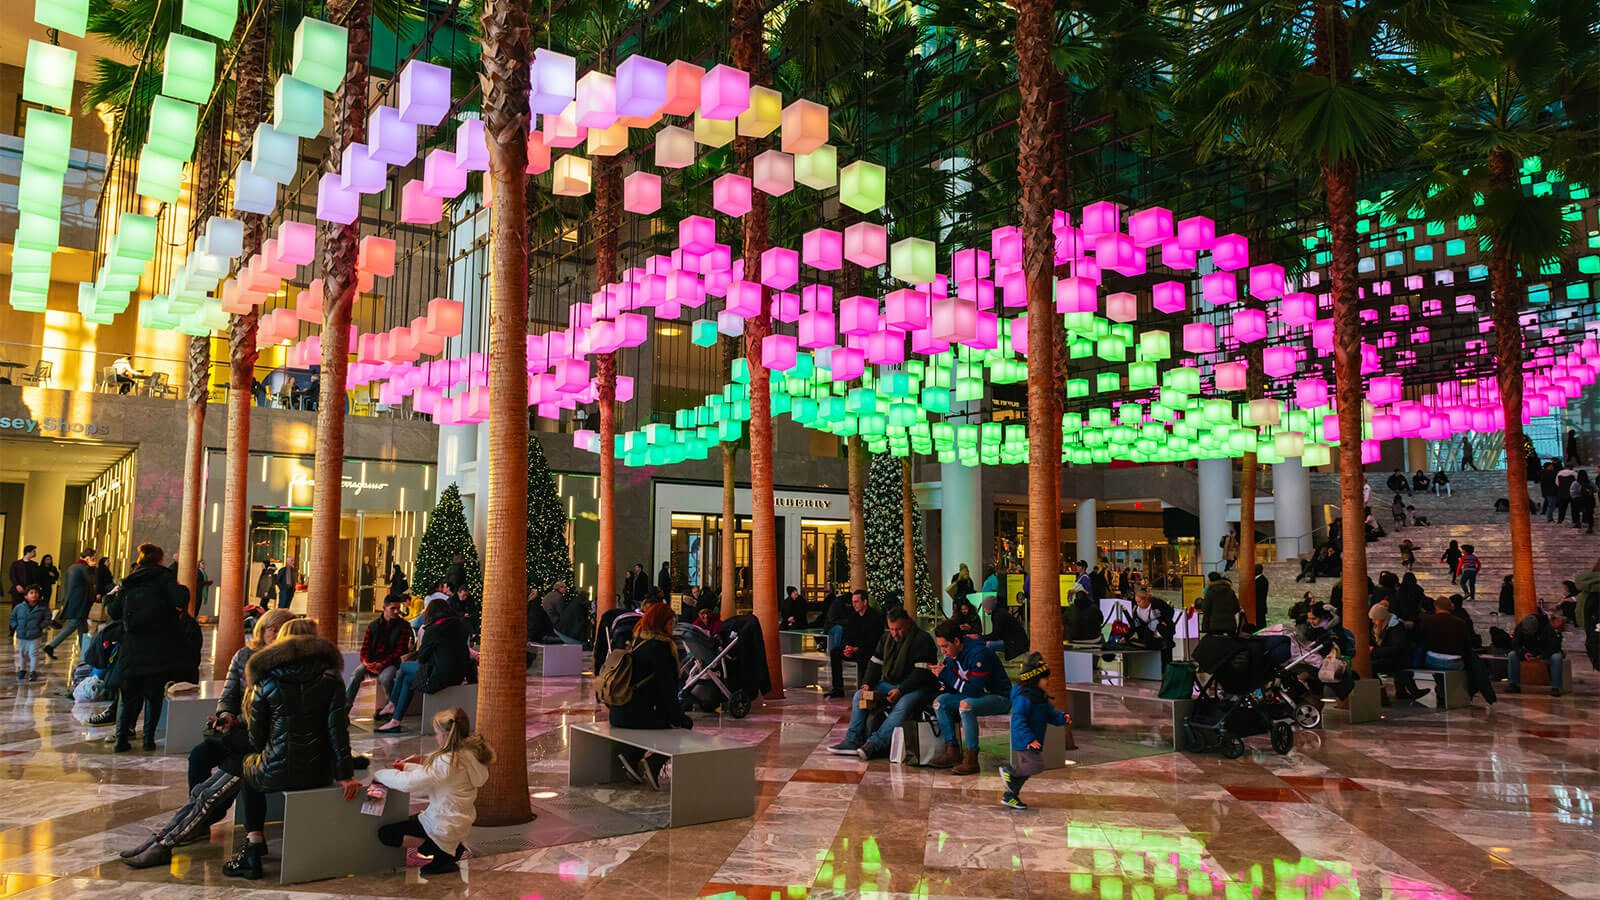 the Winter Garden during the Luminaries light festival, showcasing many colorful neon lights above the Garden